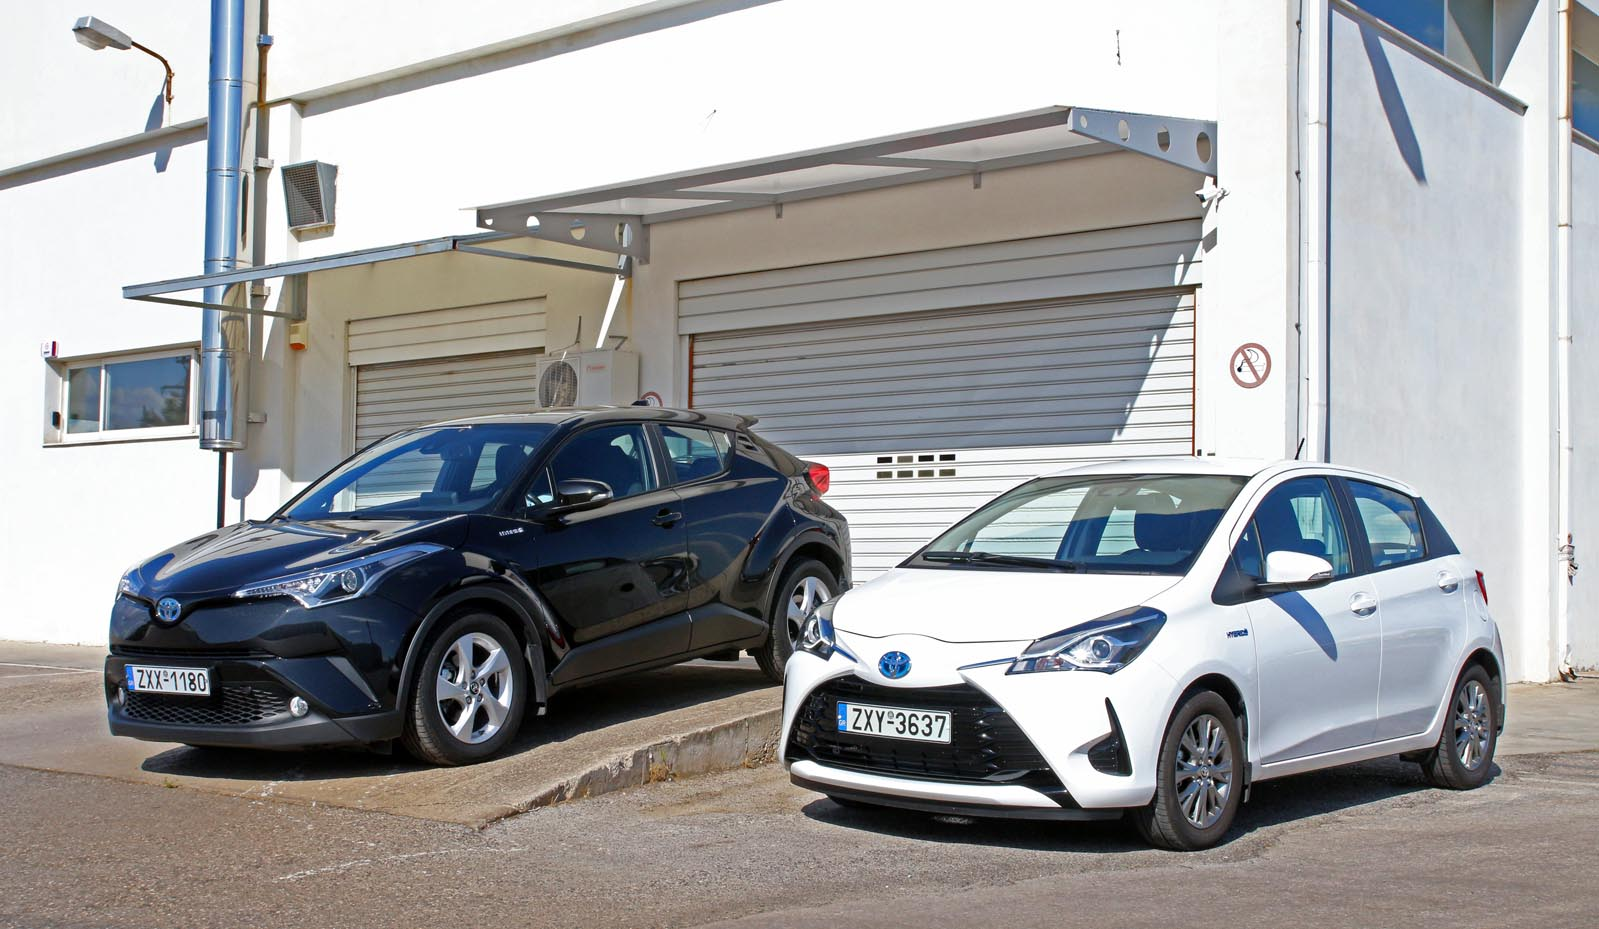 Photo of Toyota Yaris 1.5 Hybrid vs Toyota C-HR 1.8 HSD [test drive]